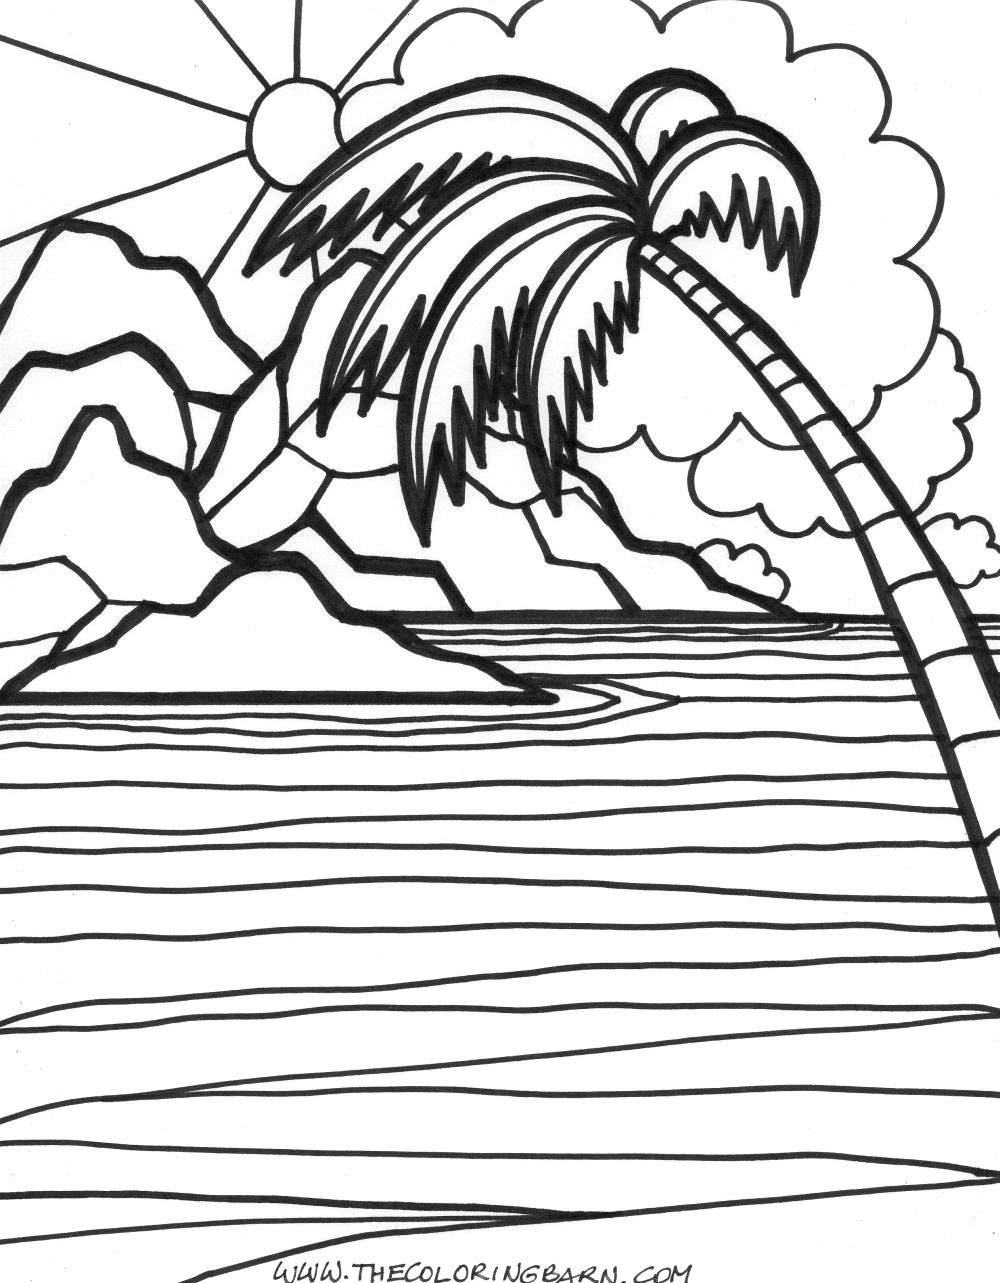 sunset coloring pages beach sunset coloring pages at getdrawings free download coloring sunset pages